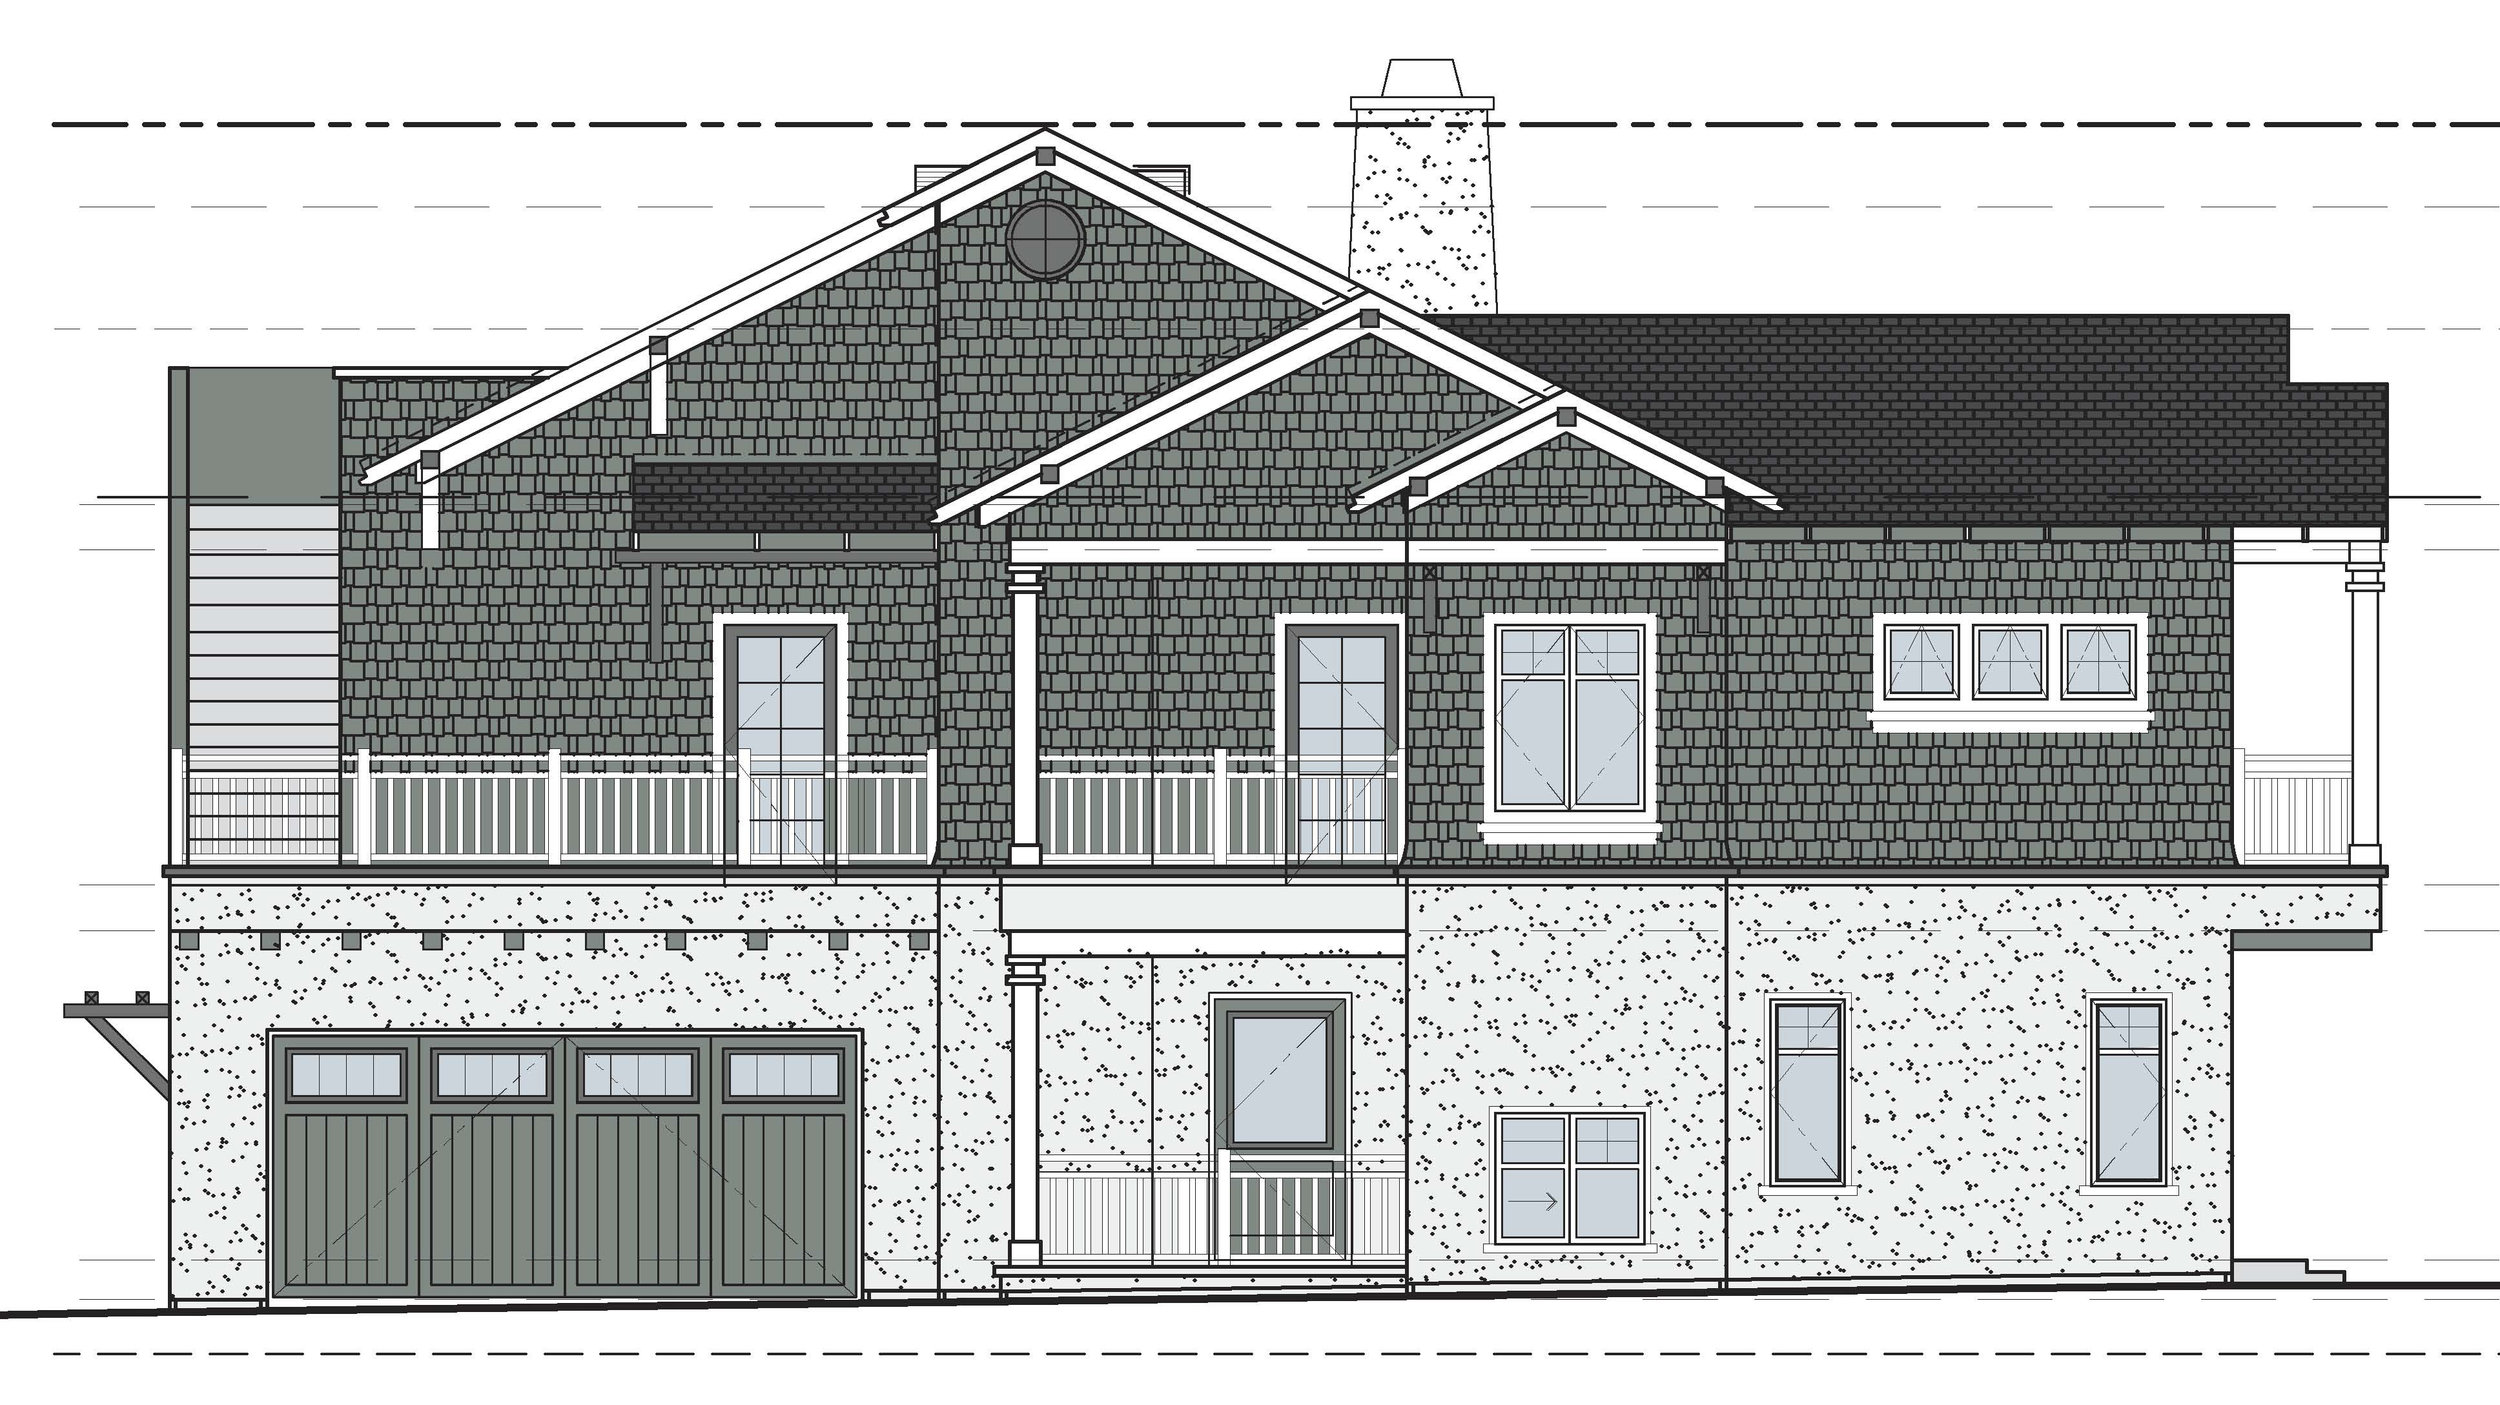 Plan lll - Location: Coronado, CAFloor Area: 7,800 SQ/FTStyle: Italian RenaissanceProject Type: Historic RenovationProject Completion: 2012